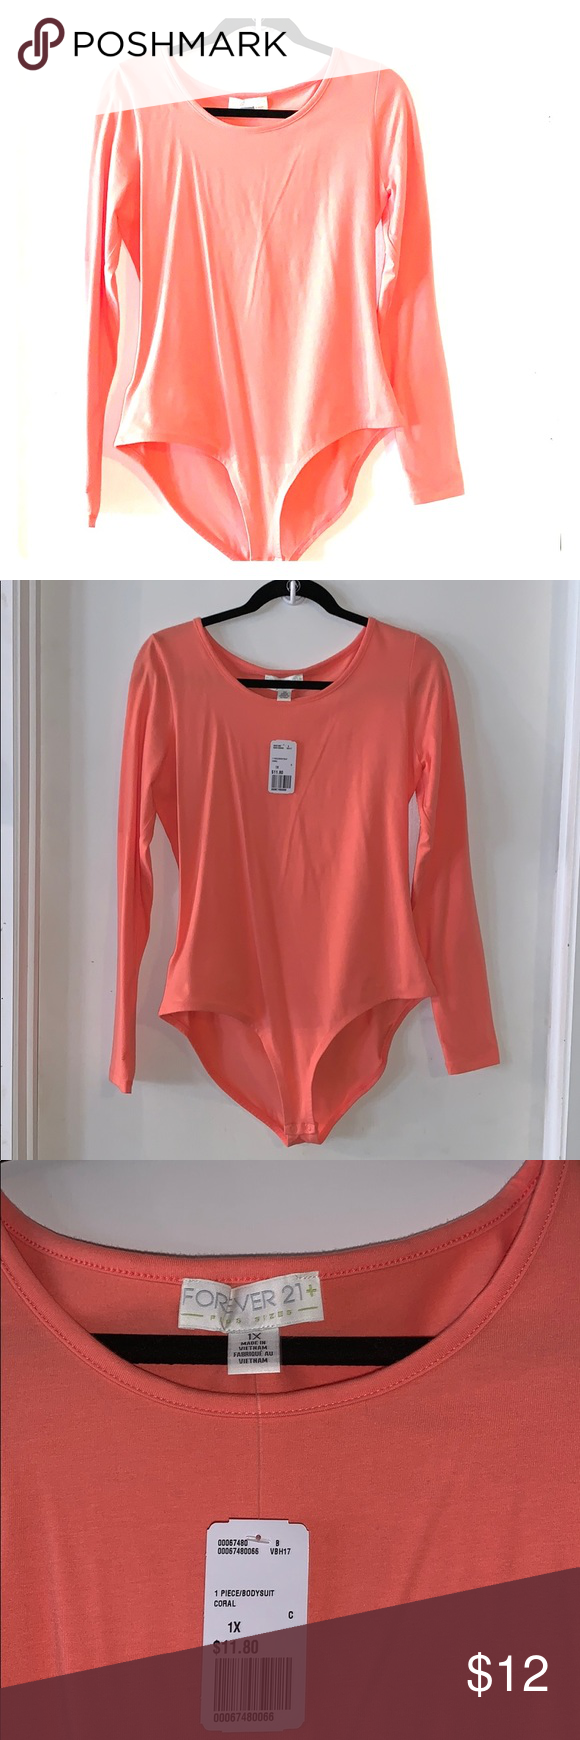 Forever 21 plus size bodysuit 1x This body suit is a size ...